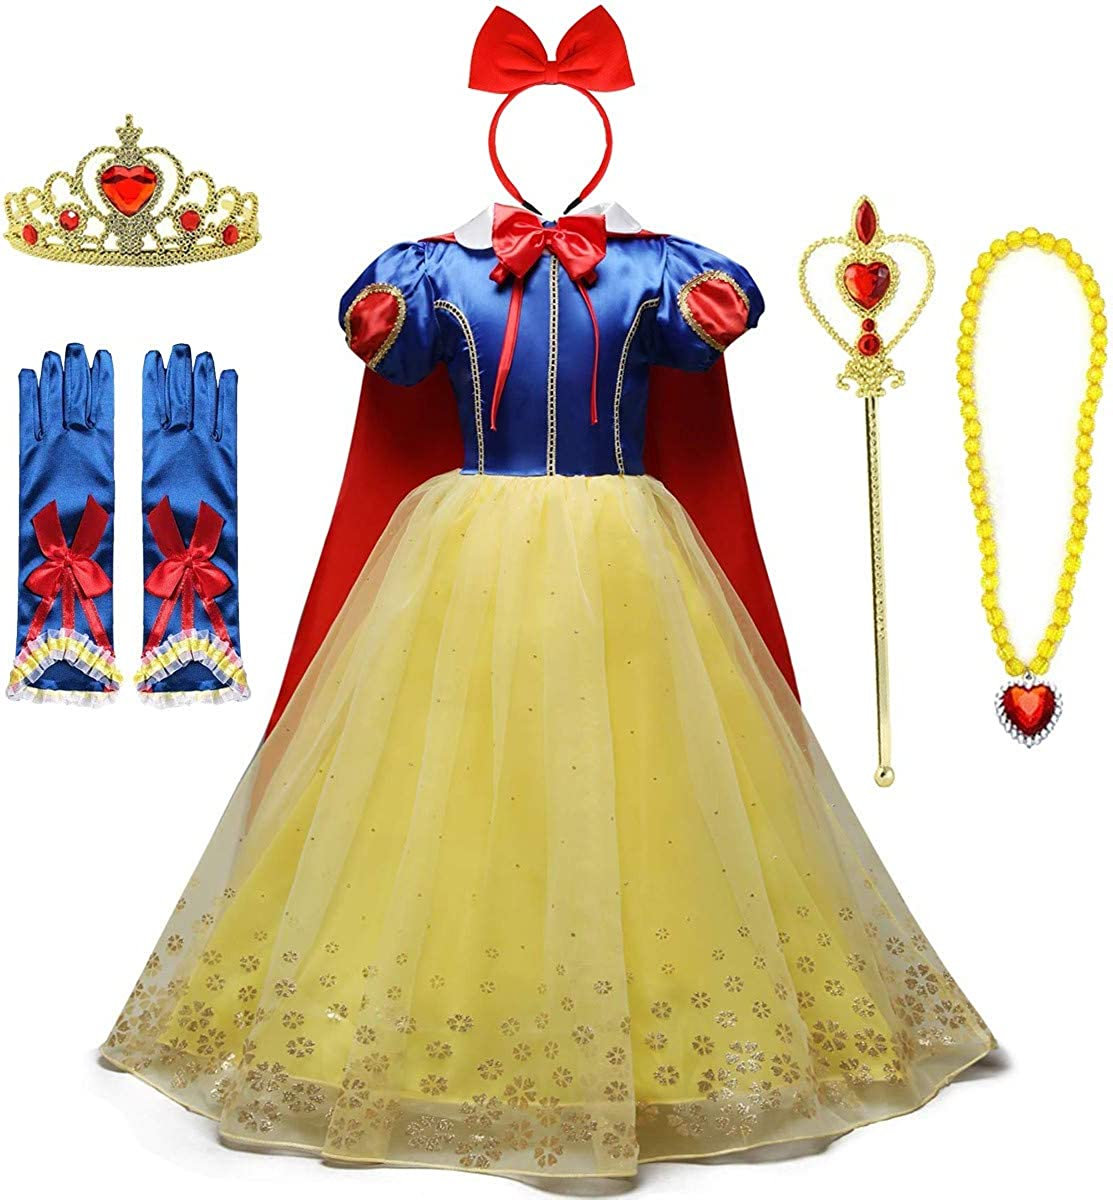 IZKIZF Girls Snow White Princess Halloween Chri Inexpensive Birthday Costume Spring new work one after another